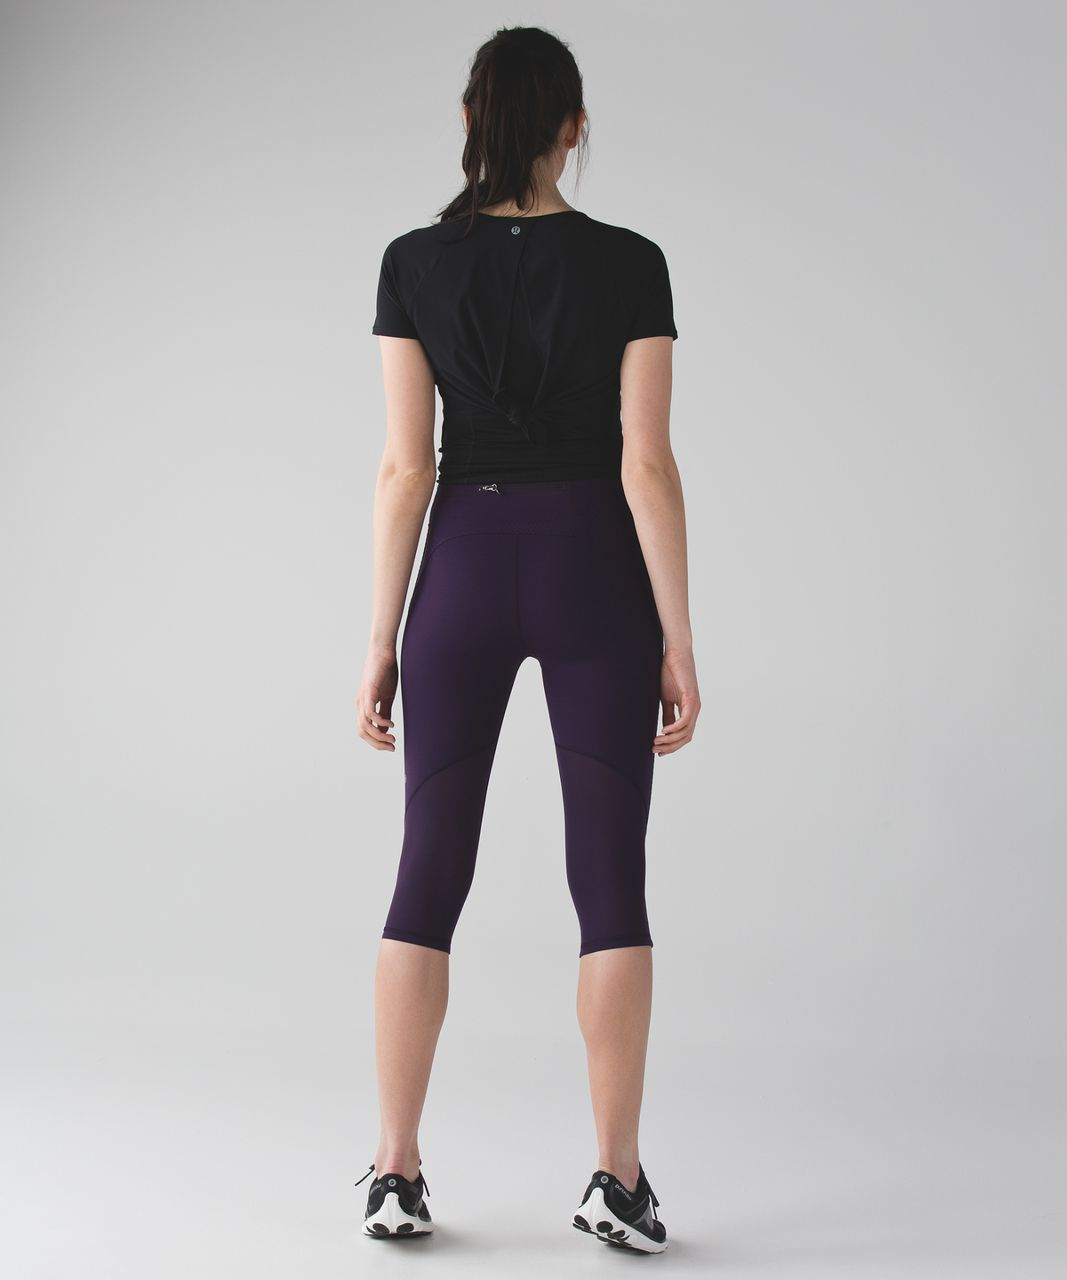 Lululemon Real Quick Crop - Deep Zinfandel